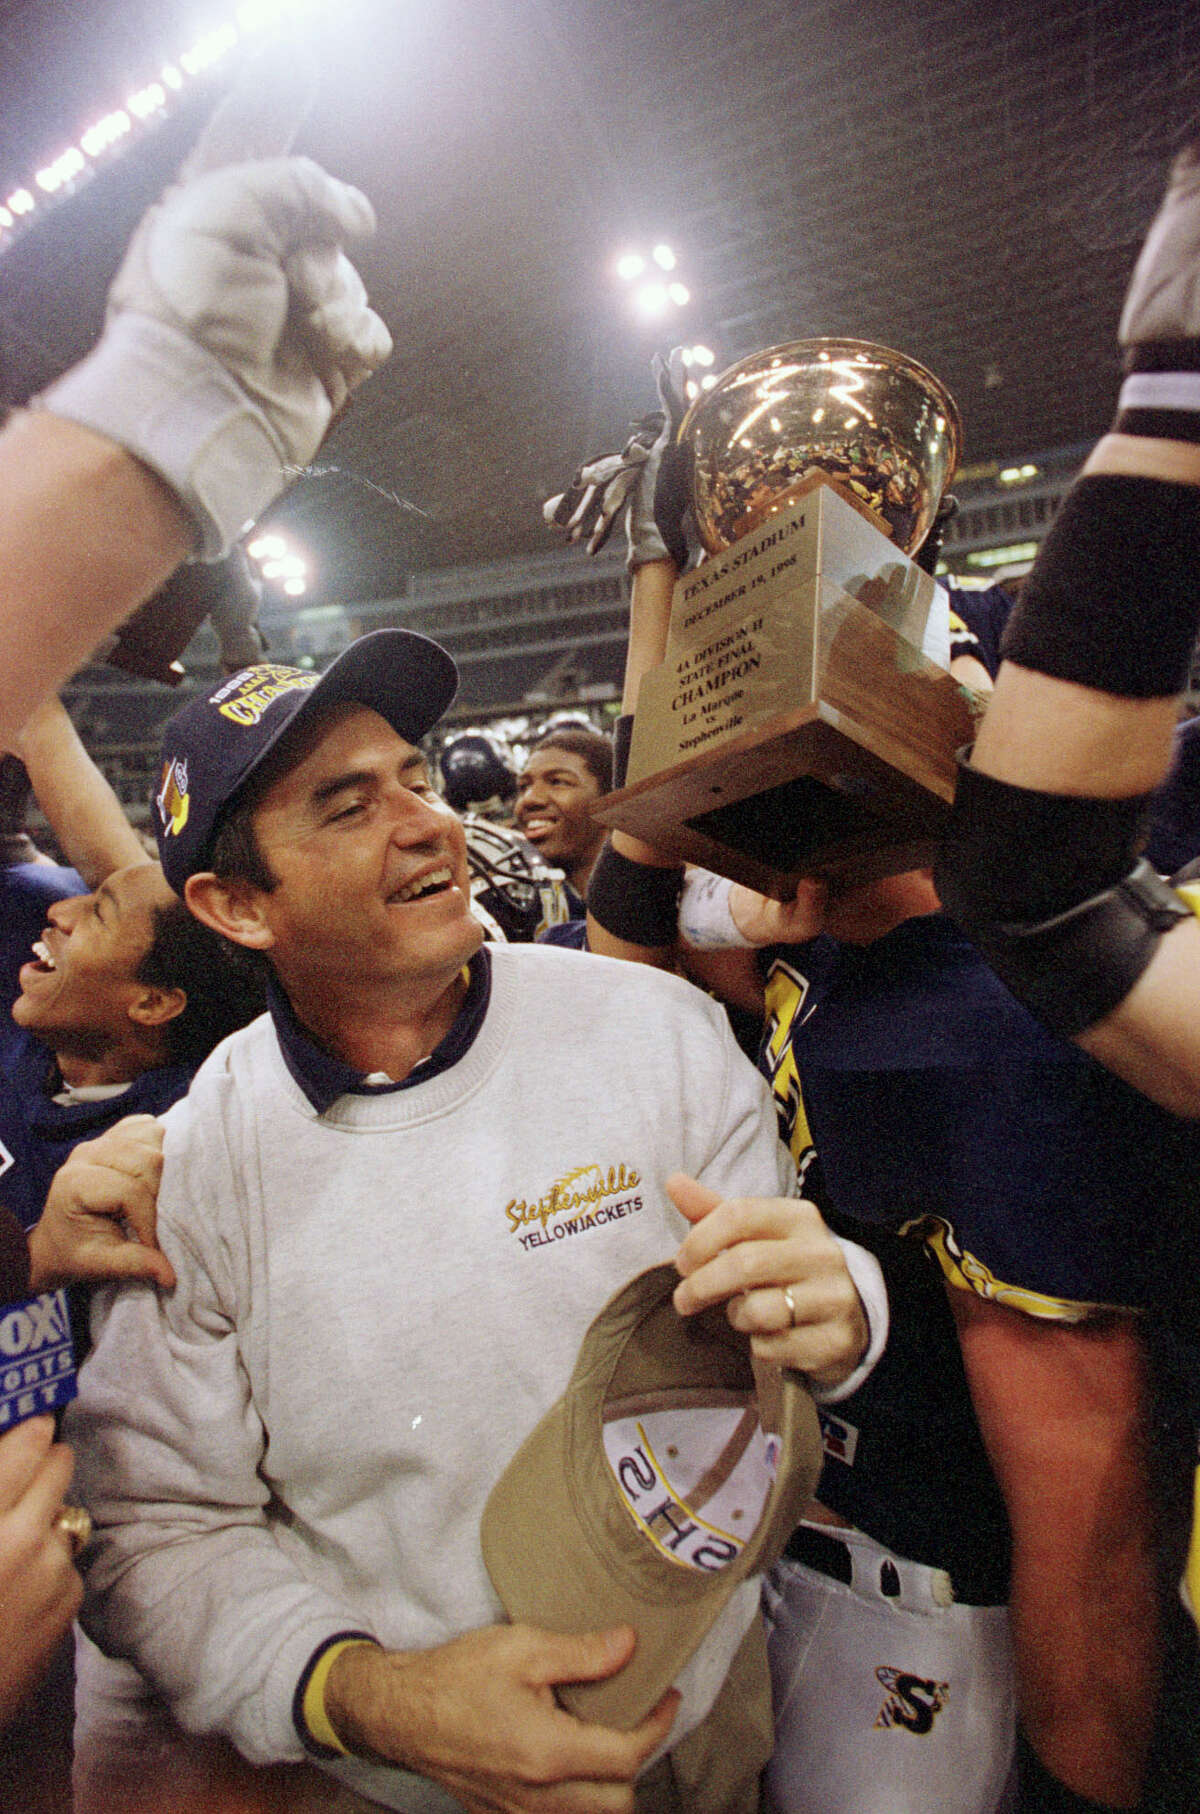 1988-99 Stephenville becomes a Texas high school powerhouse under Art Briles, winning back-to-back Class 4A state titles in 1993-94 and again in 1998-99. The Yellowjackets went 90-2-1 during a remarkable six-year run.